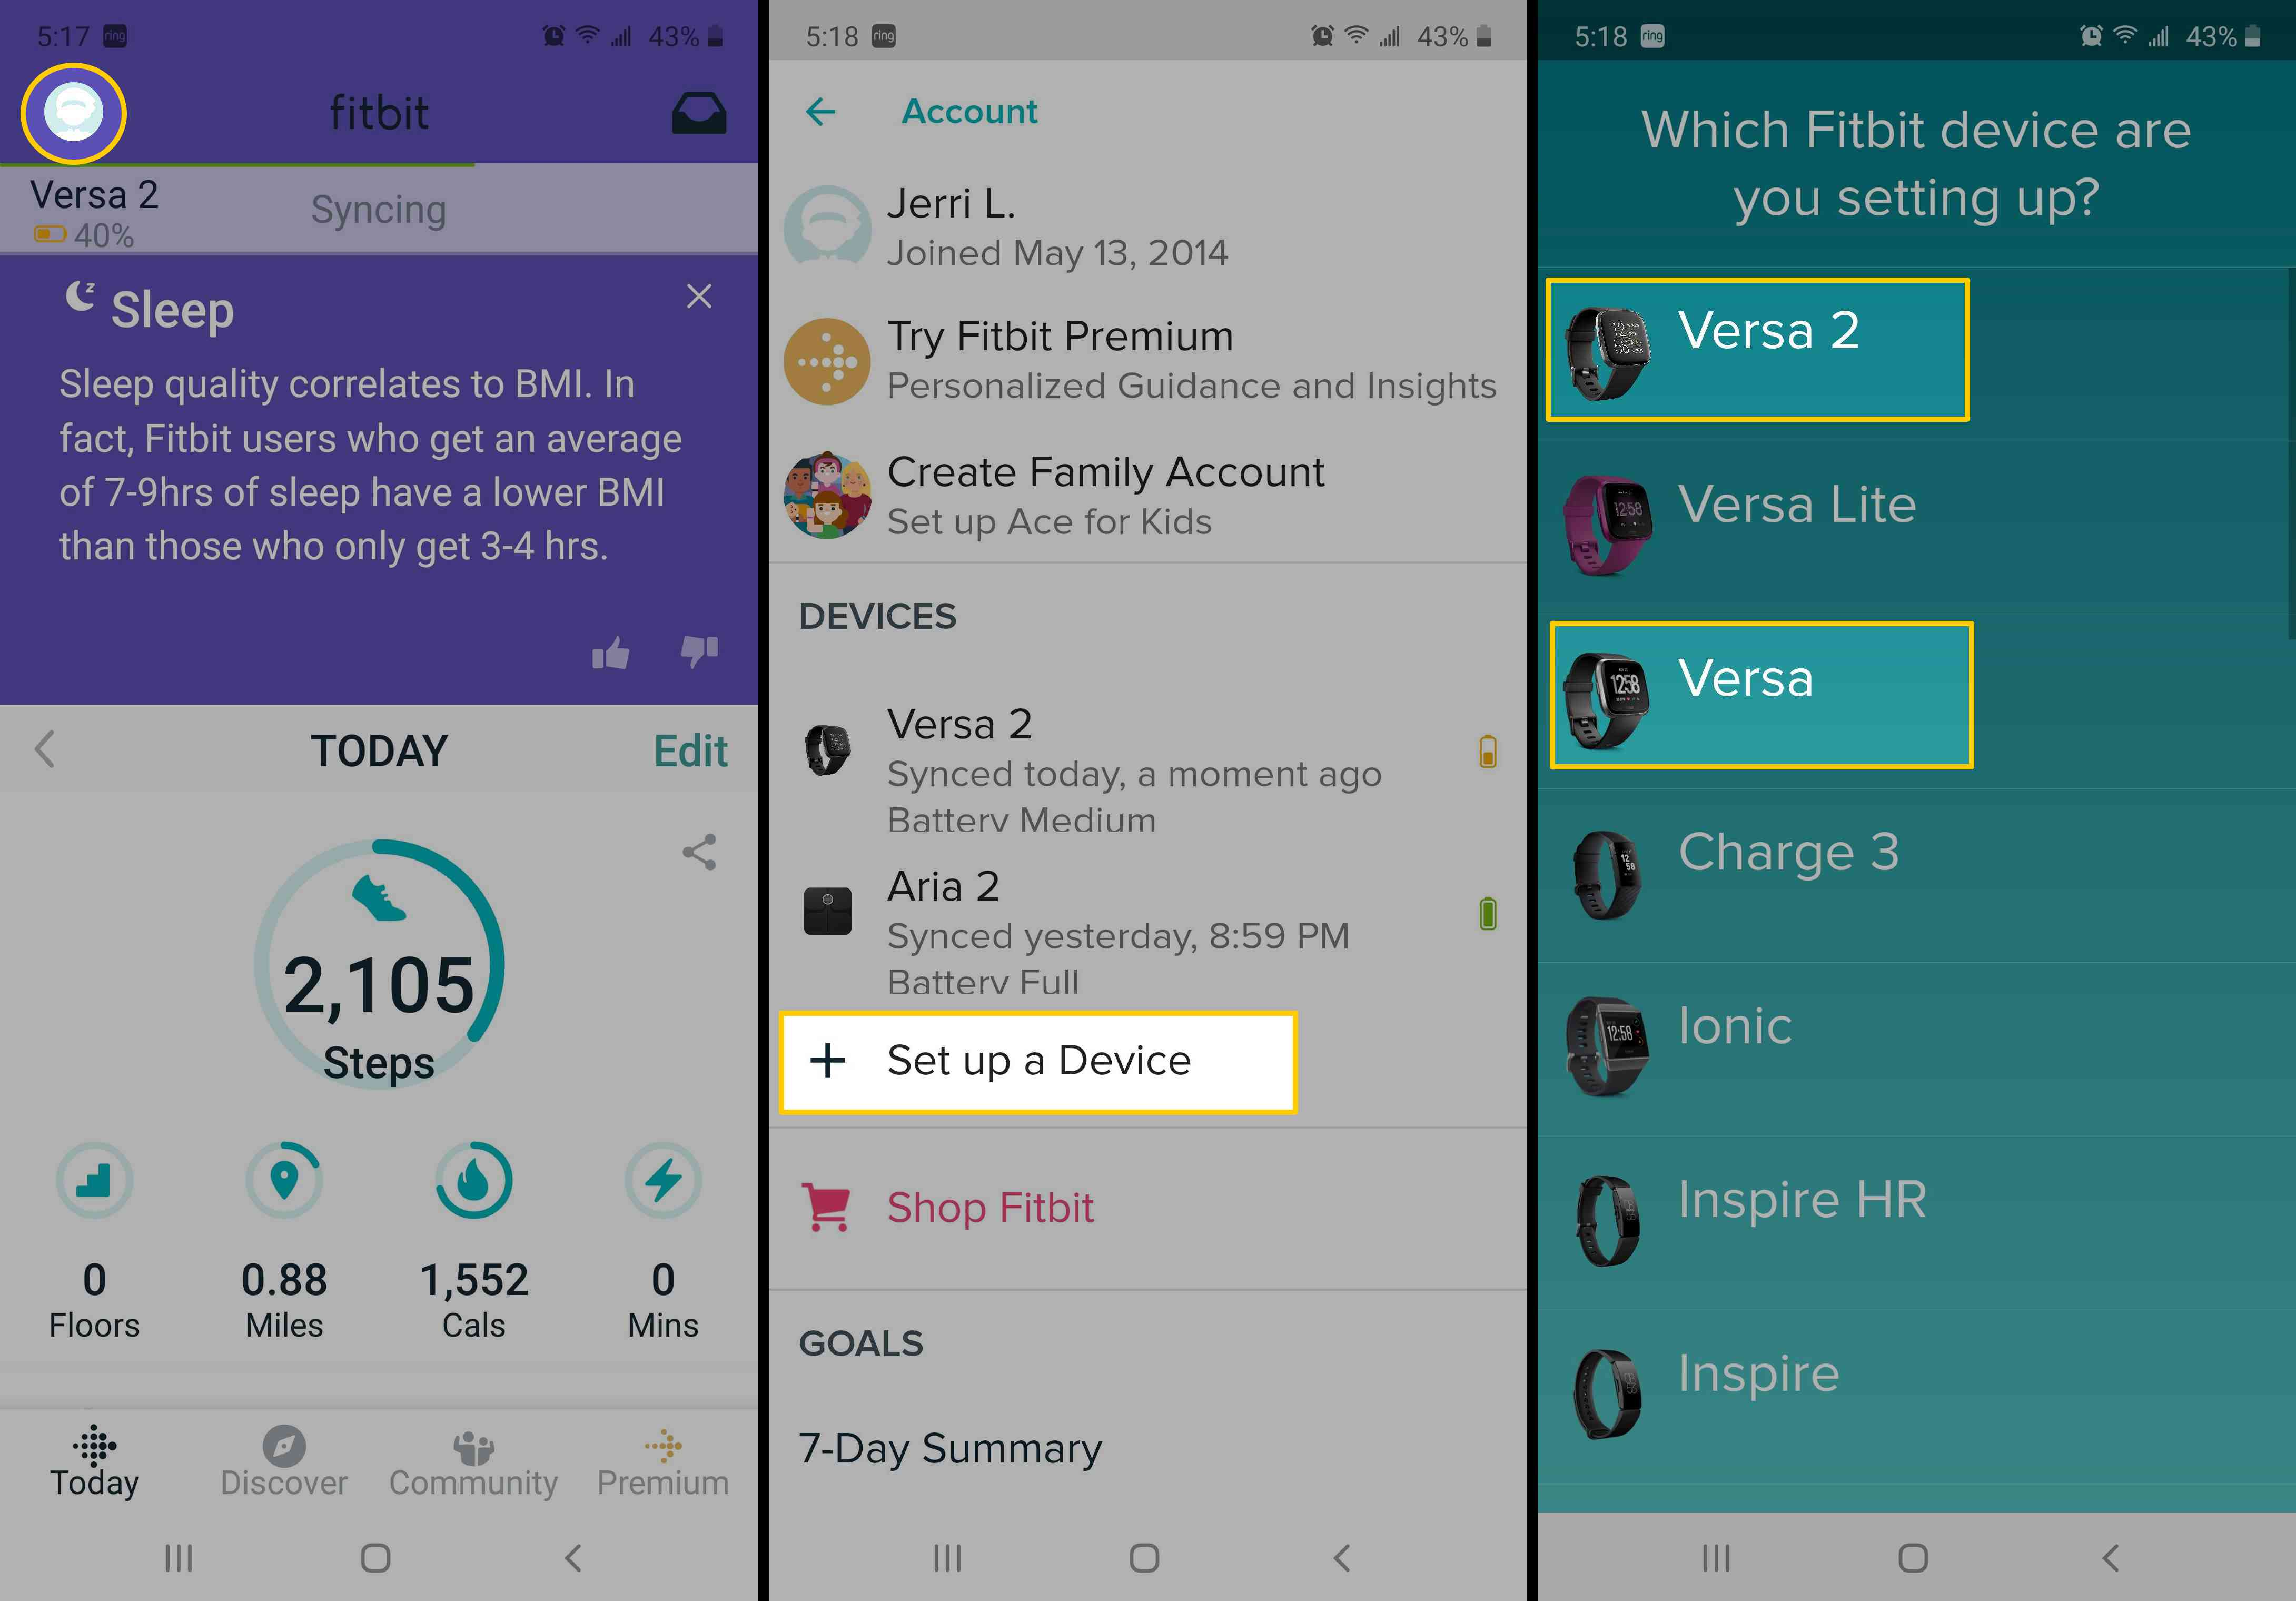 Screenshots showing how to add a new device to an existing Fitbit account.